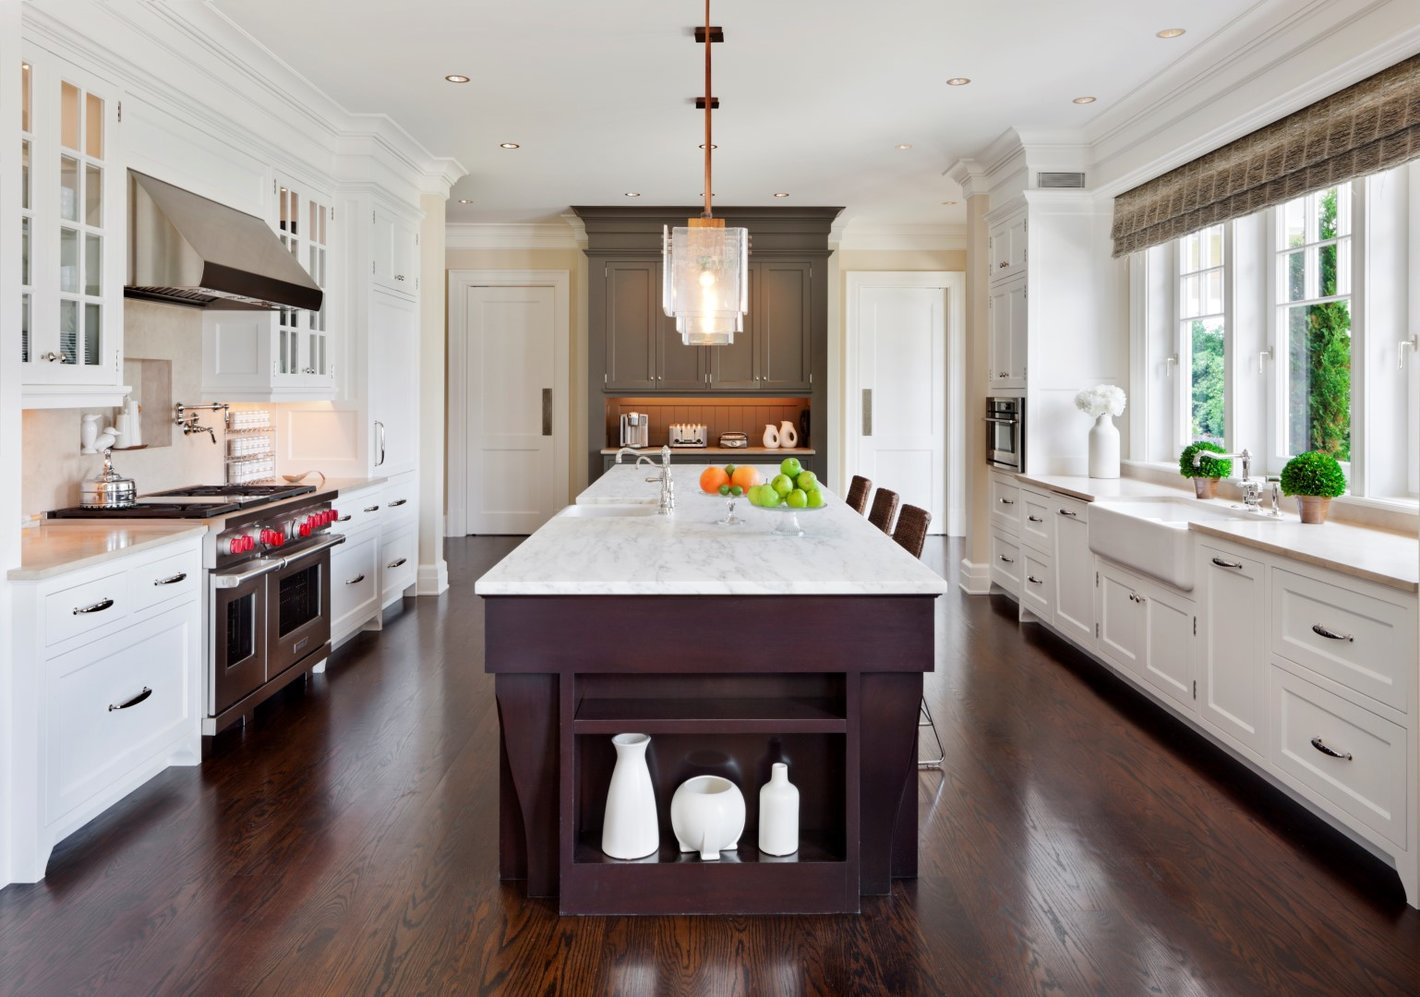 Colorado Luxe Kitchen - Luxury Residential by Philpotts Interiors